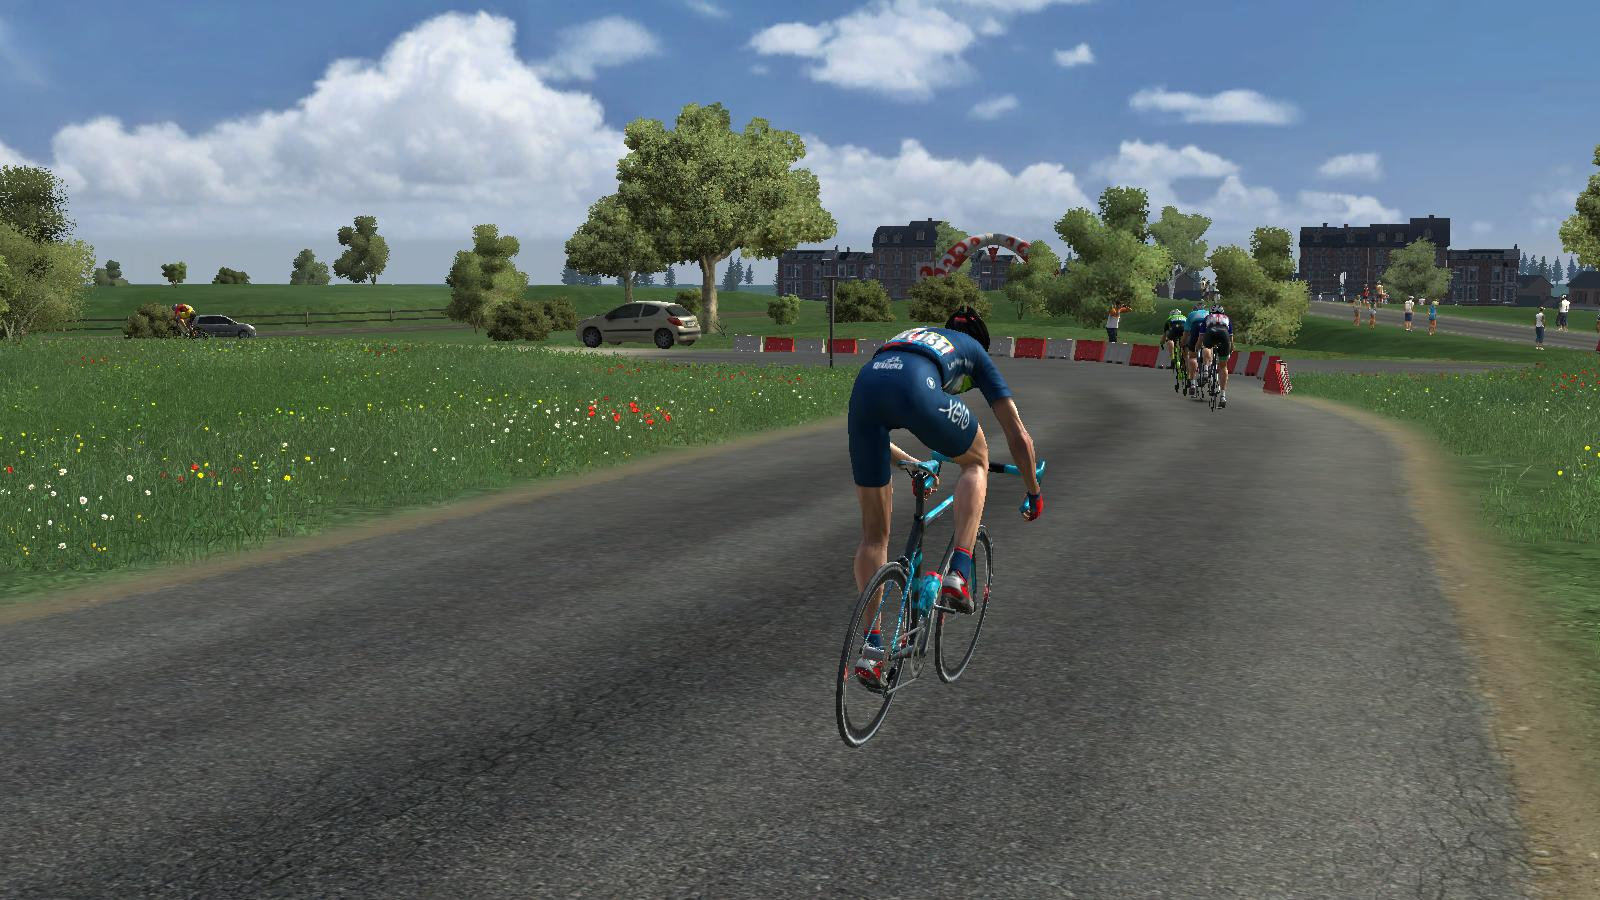 pcmdaily.com/images/mg/2019/Races/PTHC/Rheden/9.jpg